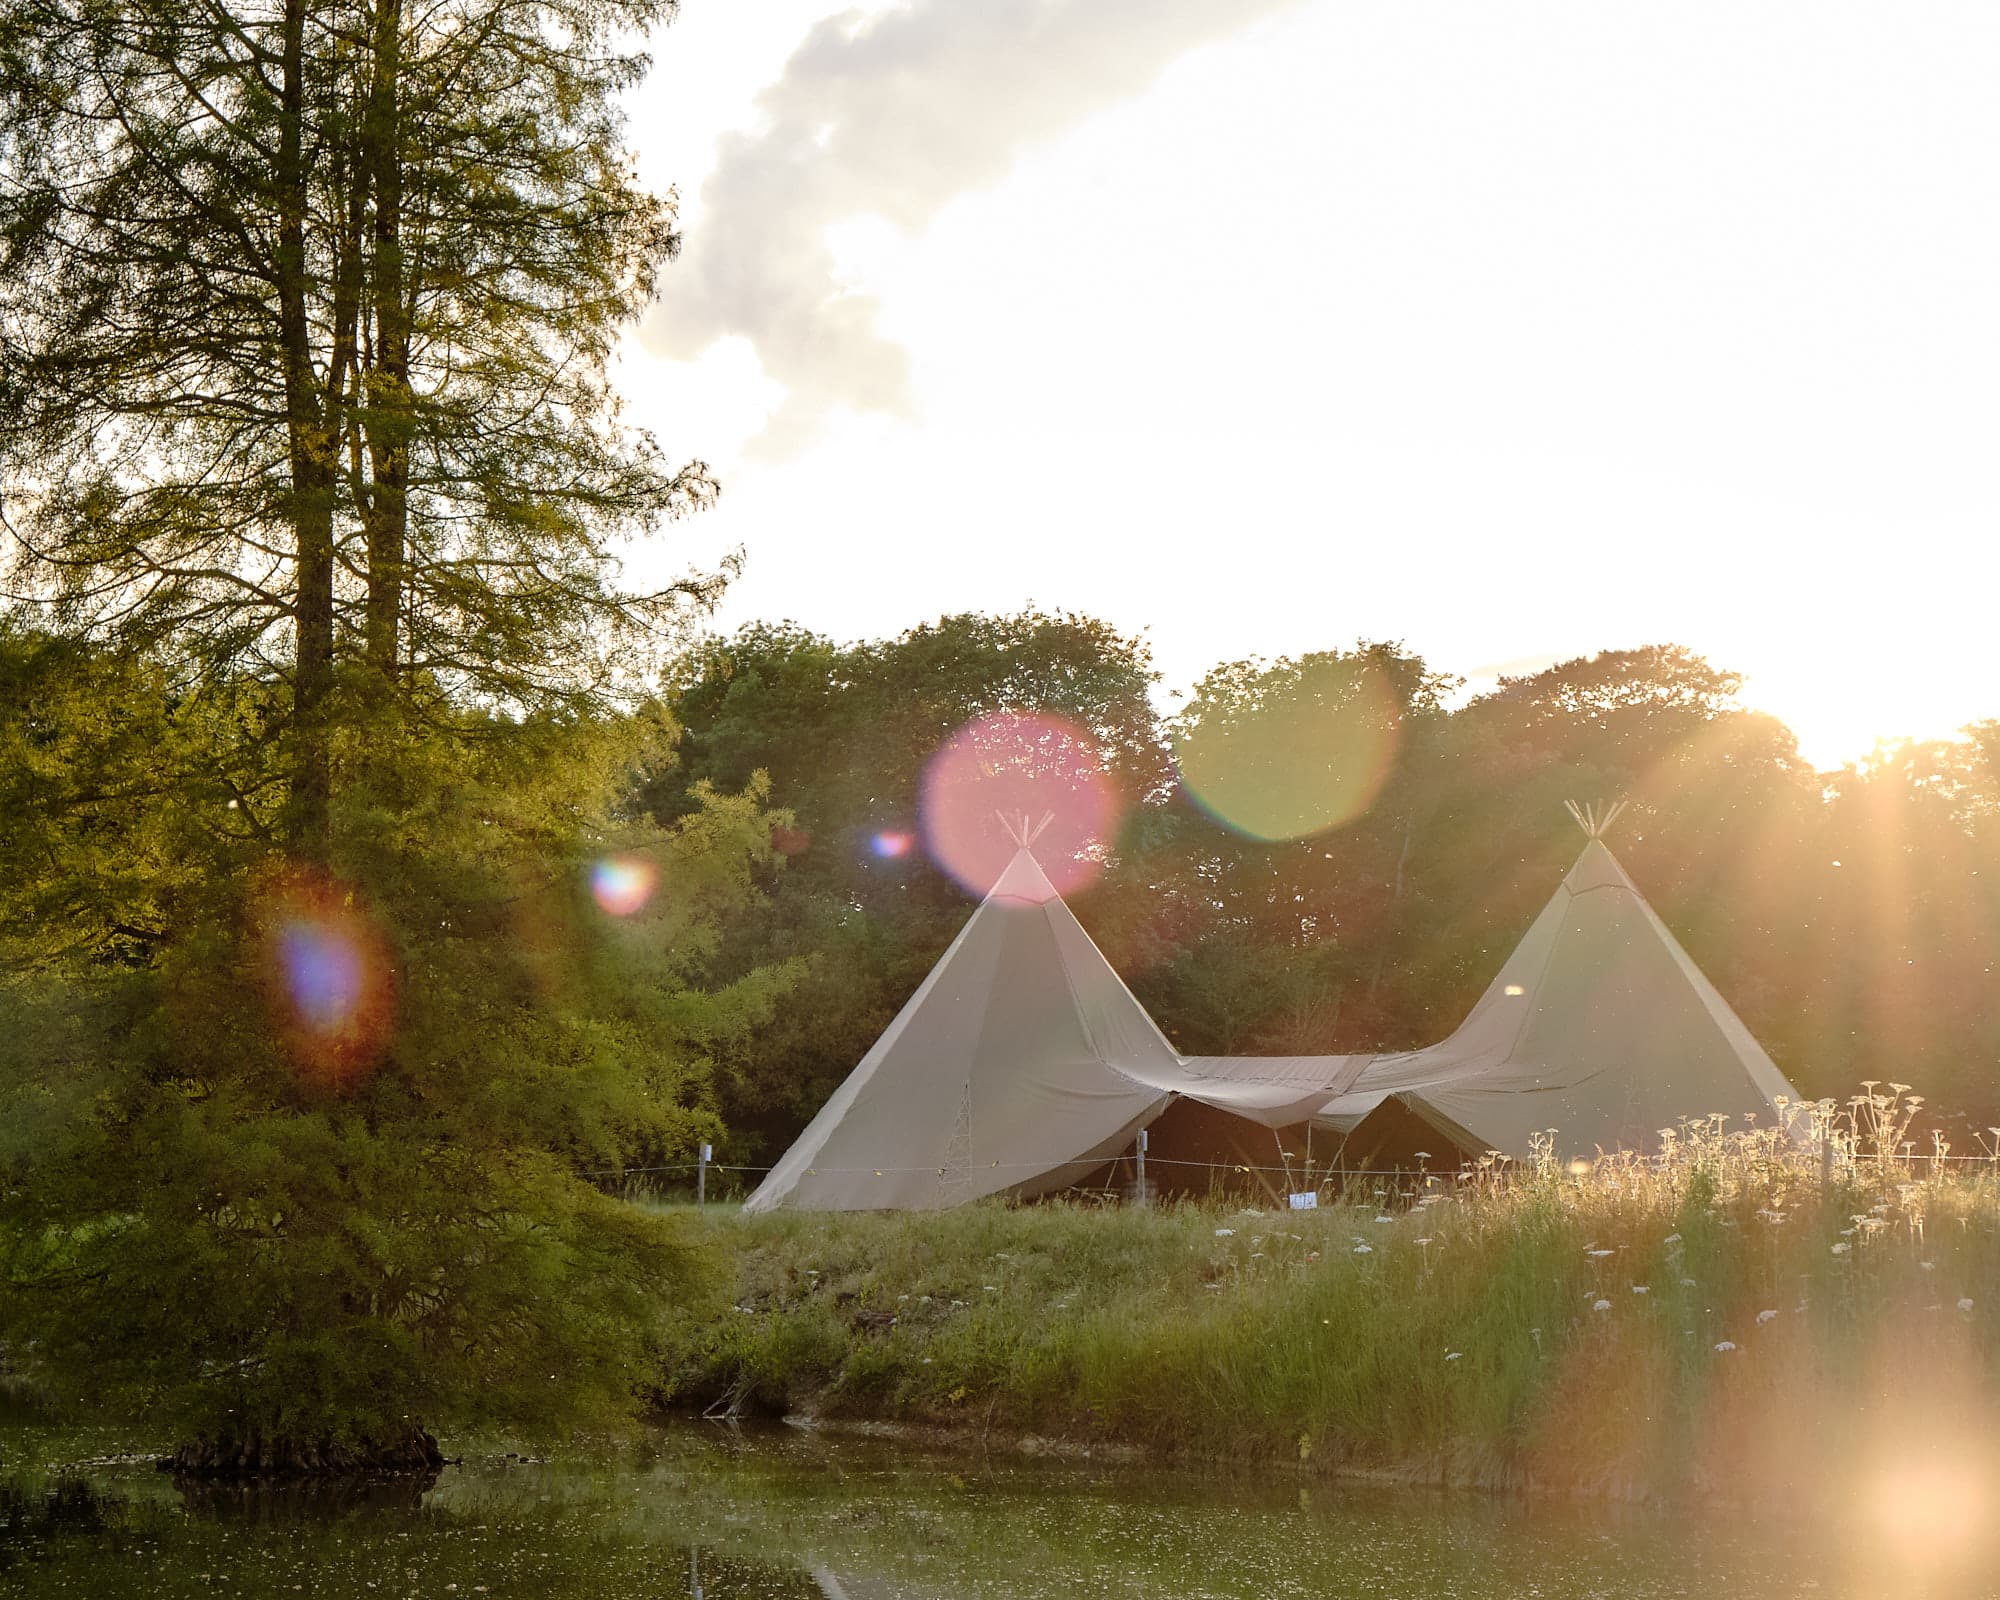 A tipi Lincolnshire Wedding at Revesby Estate. The tipi is located in front of the lake at sunset and a sun flare enters the camera